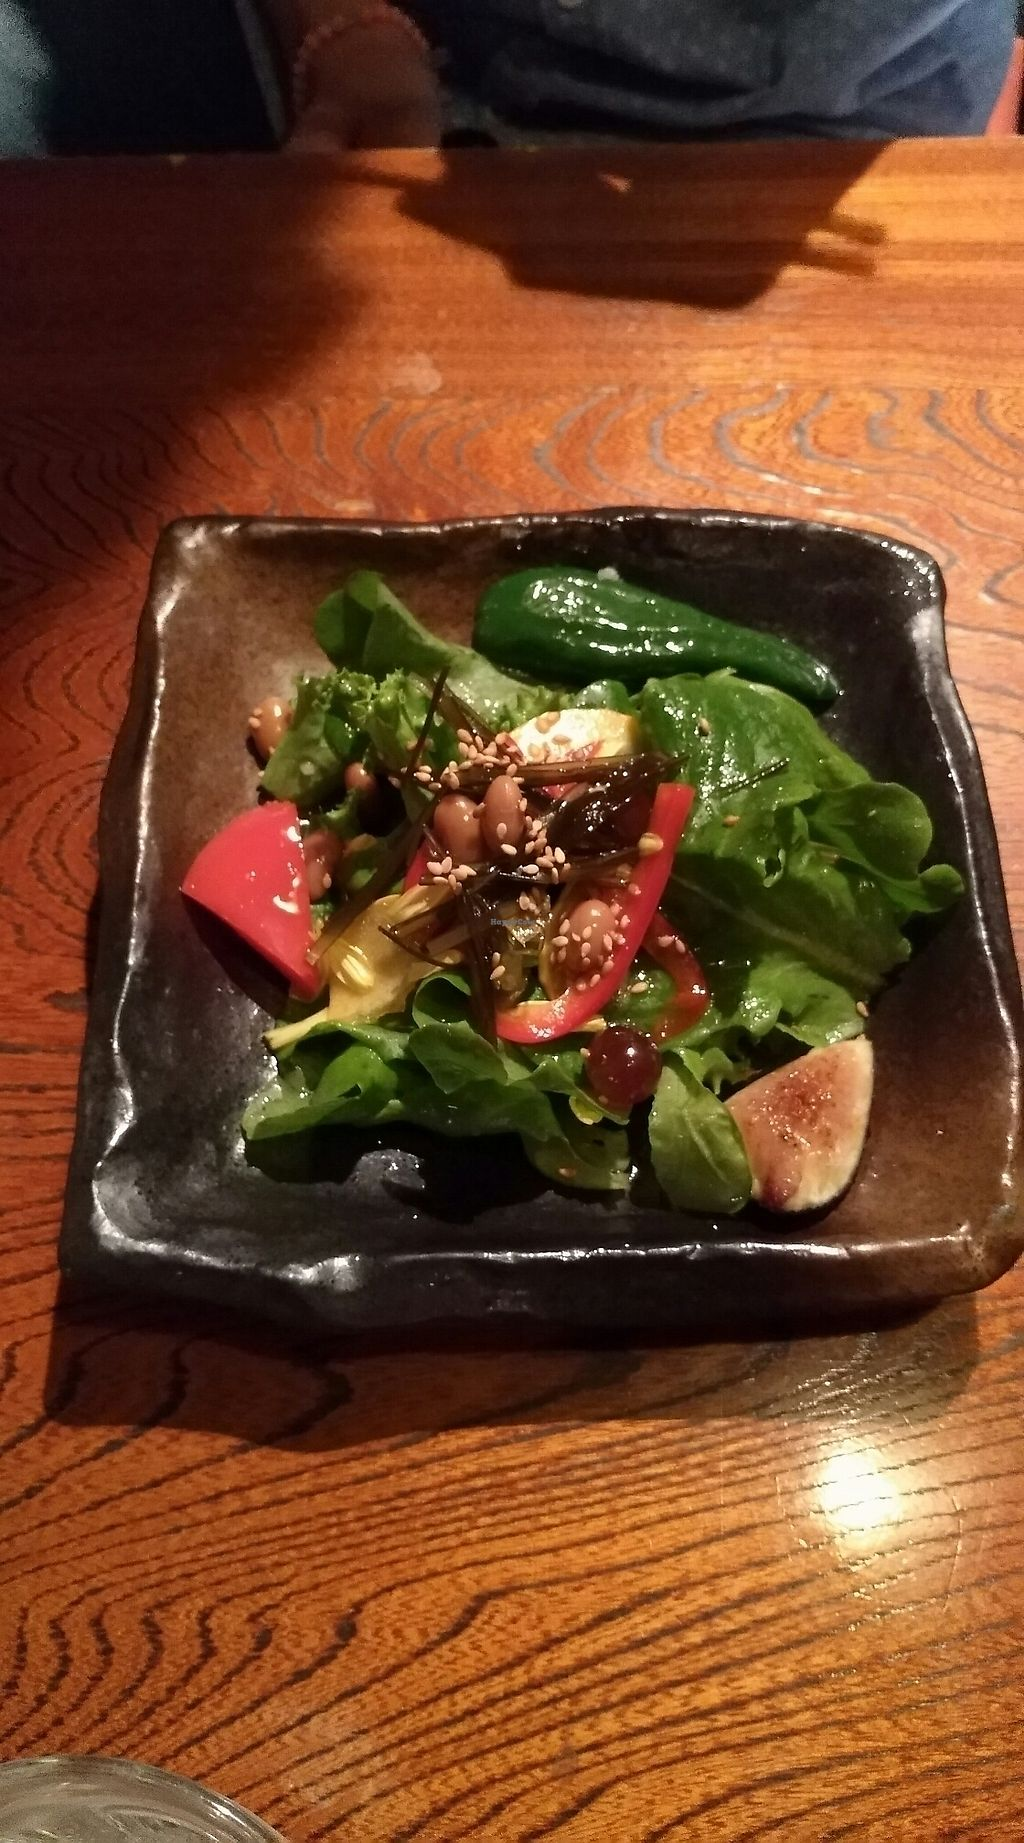 "Photo of Shishin Samurai Cafe & Bar  by <a href=""/members/profile/JeannetteVigneron"">JeannetteVigneron</a> <br/>samouraï salad <br/> August 14, 2017  - <a href='/contact/abuse/image/98302/292639'>Report</a>"